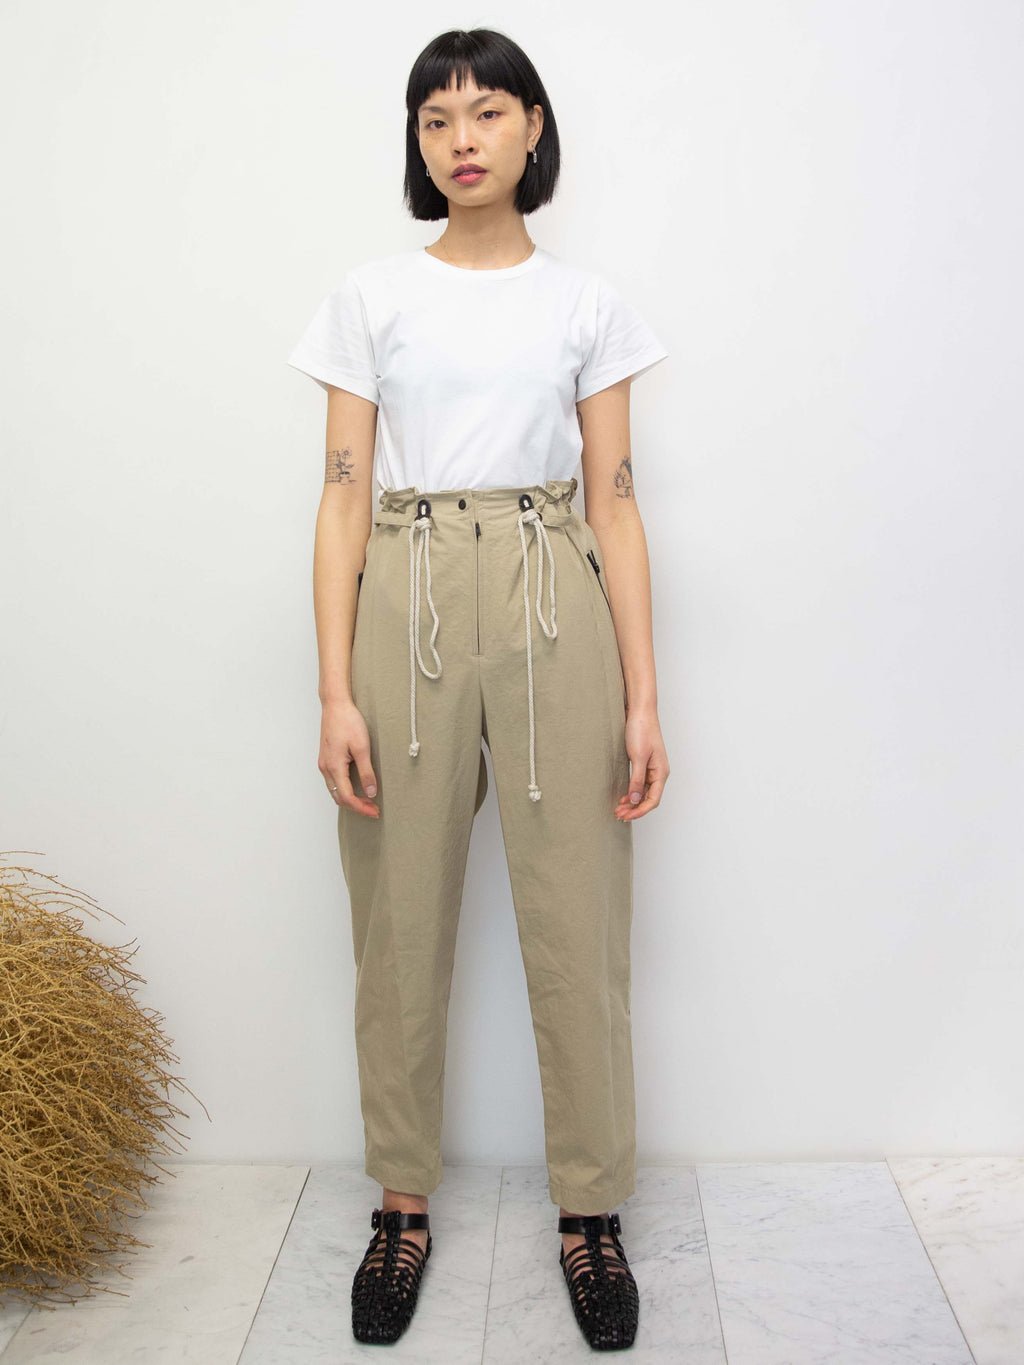 Y's Waist Tie Oxford Pants